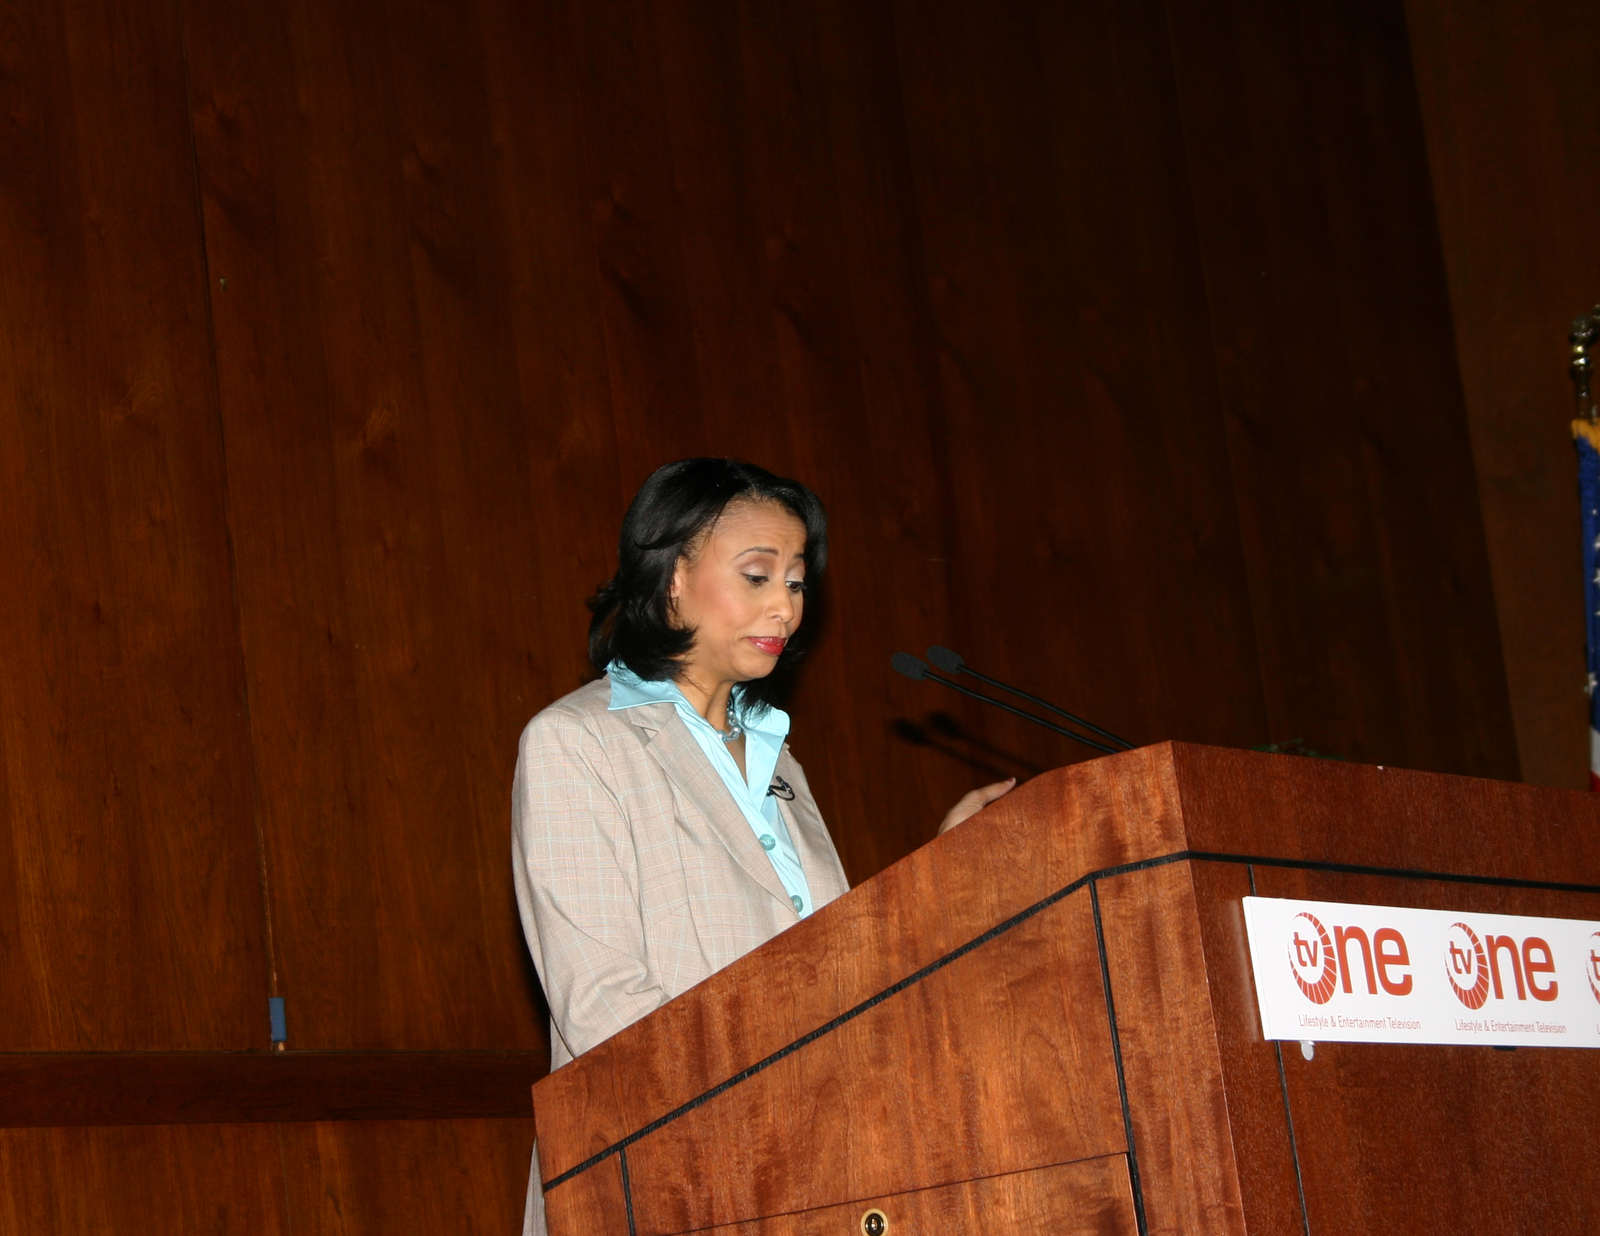 [Assignment: 48-DPA-N_DOI_Singletary] Book forum [at Main Interior, featuring presentation by] Michelle Singletary, [Washington Post financial columnist, and author of Your Money and Your Man: How You and Prince Charming Can Spend Well and Live Rich] [48-DPA-N_DOI_Singletary_IMG_5651.JPG]